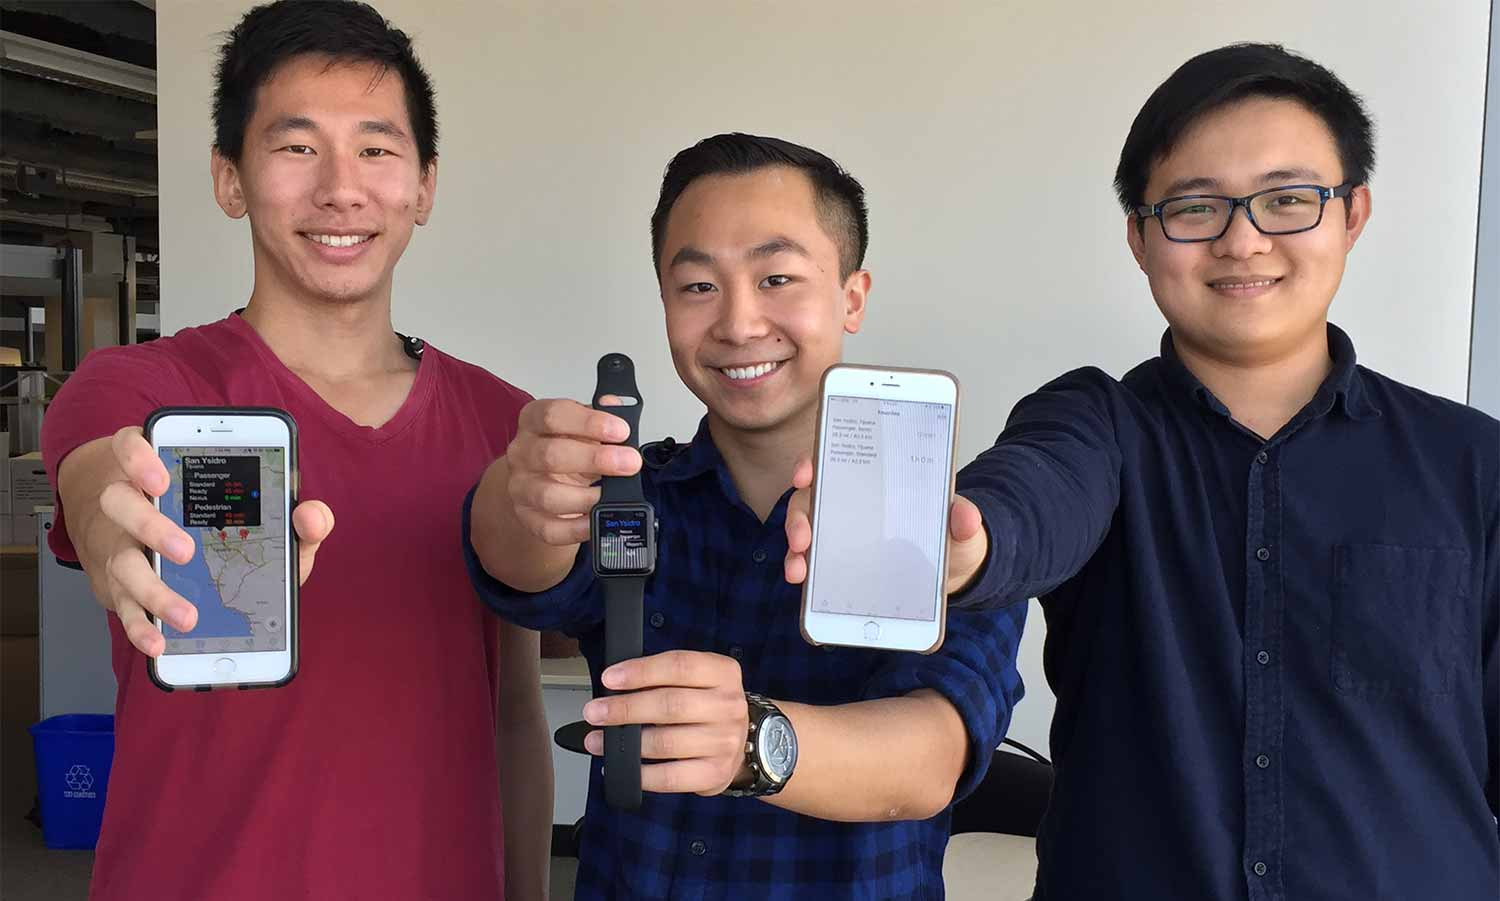 Image: Kevin Gu, Brian Chin and Martin Gao Best Time to Cross the Border App